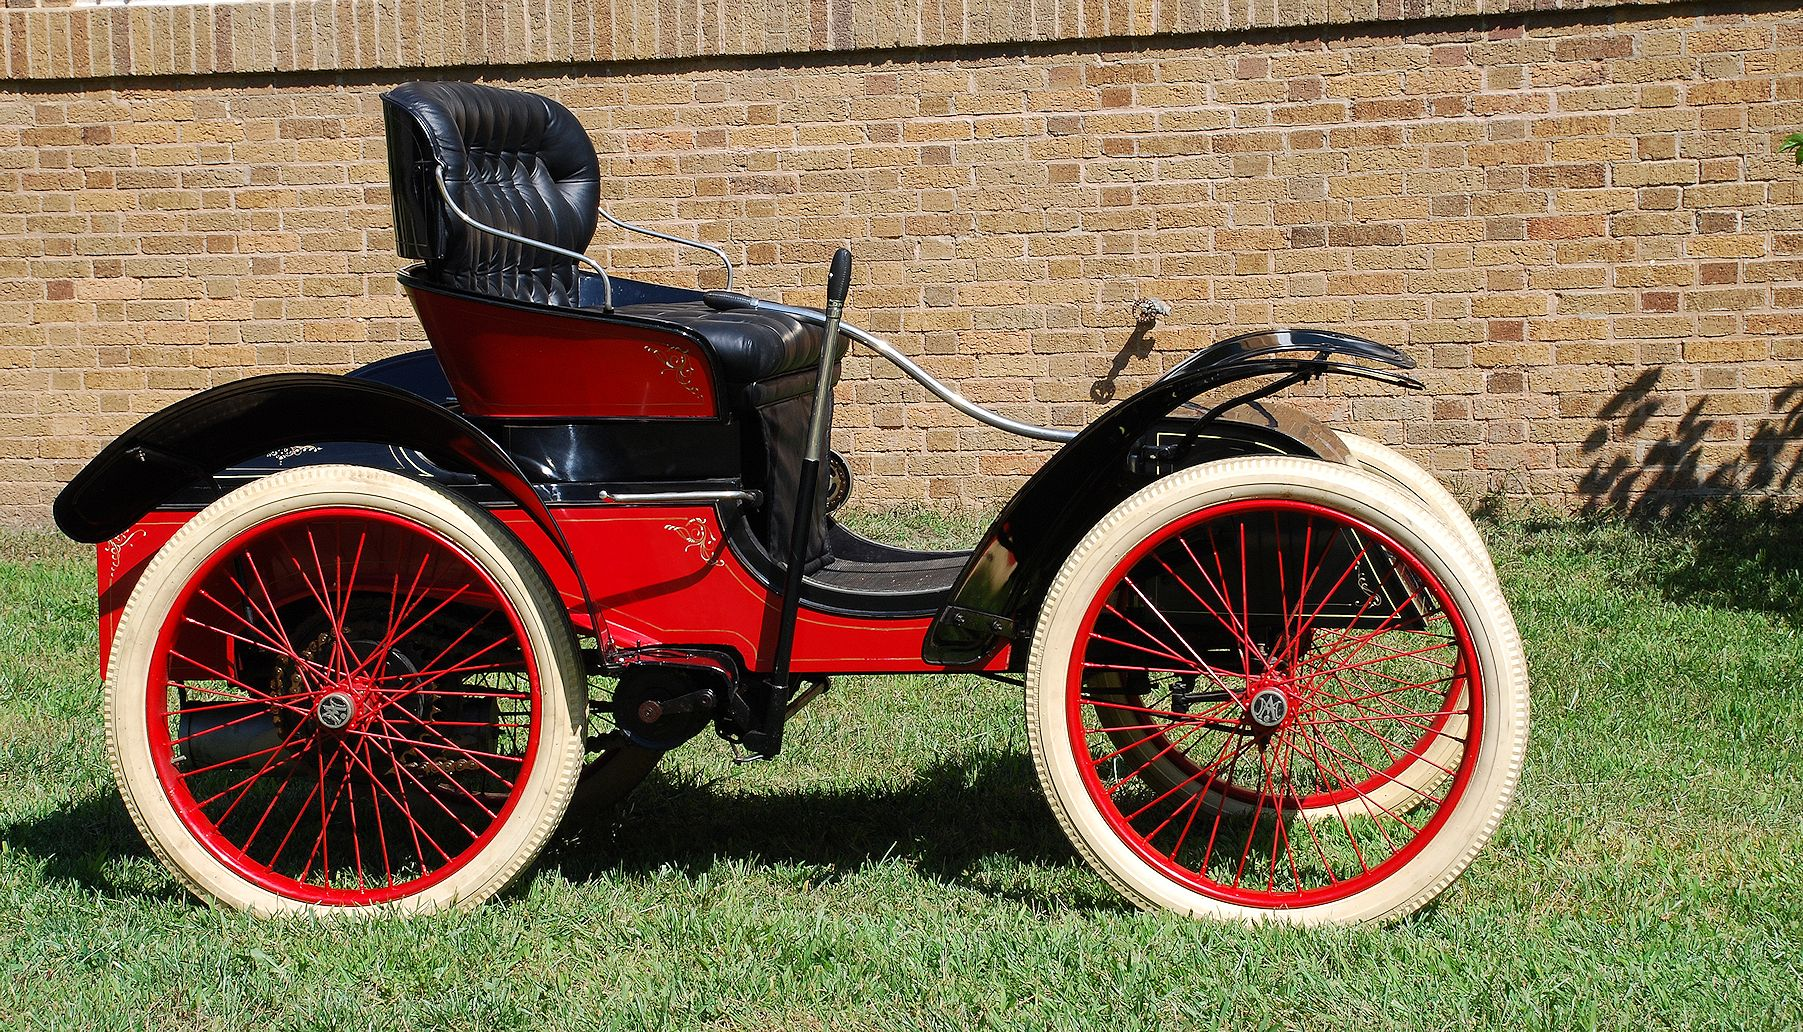 This 1903 Michigan Automobile is currently in the collection of the Sauk County Historical Society.